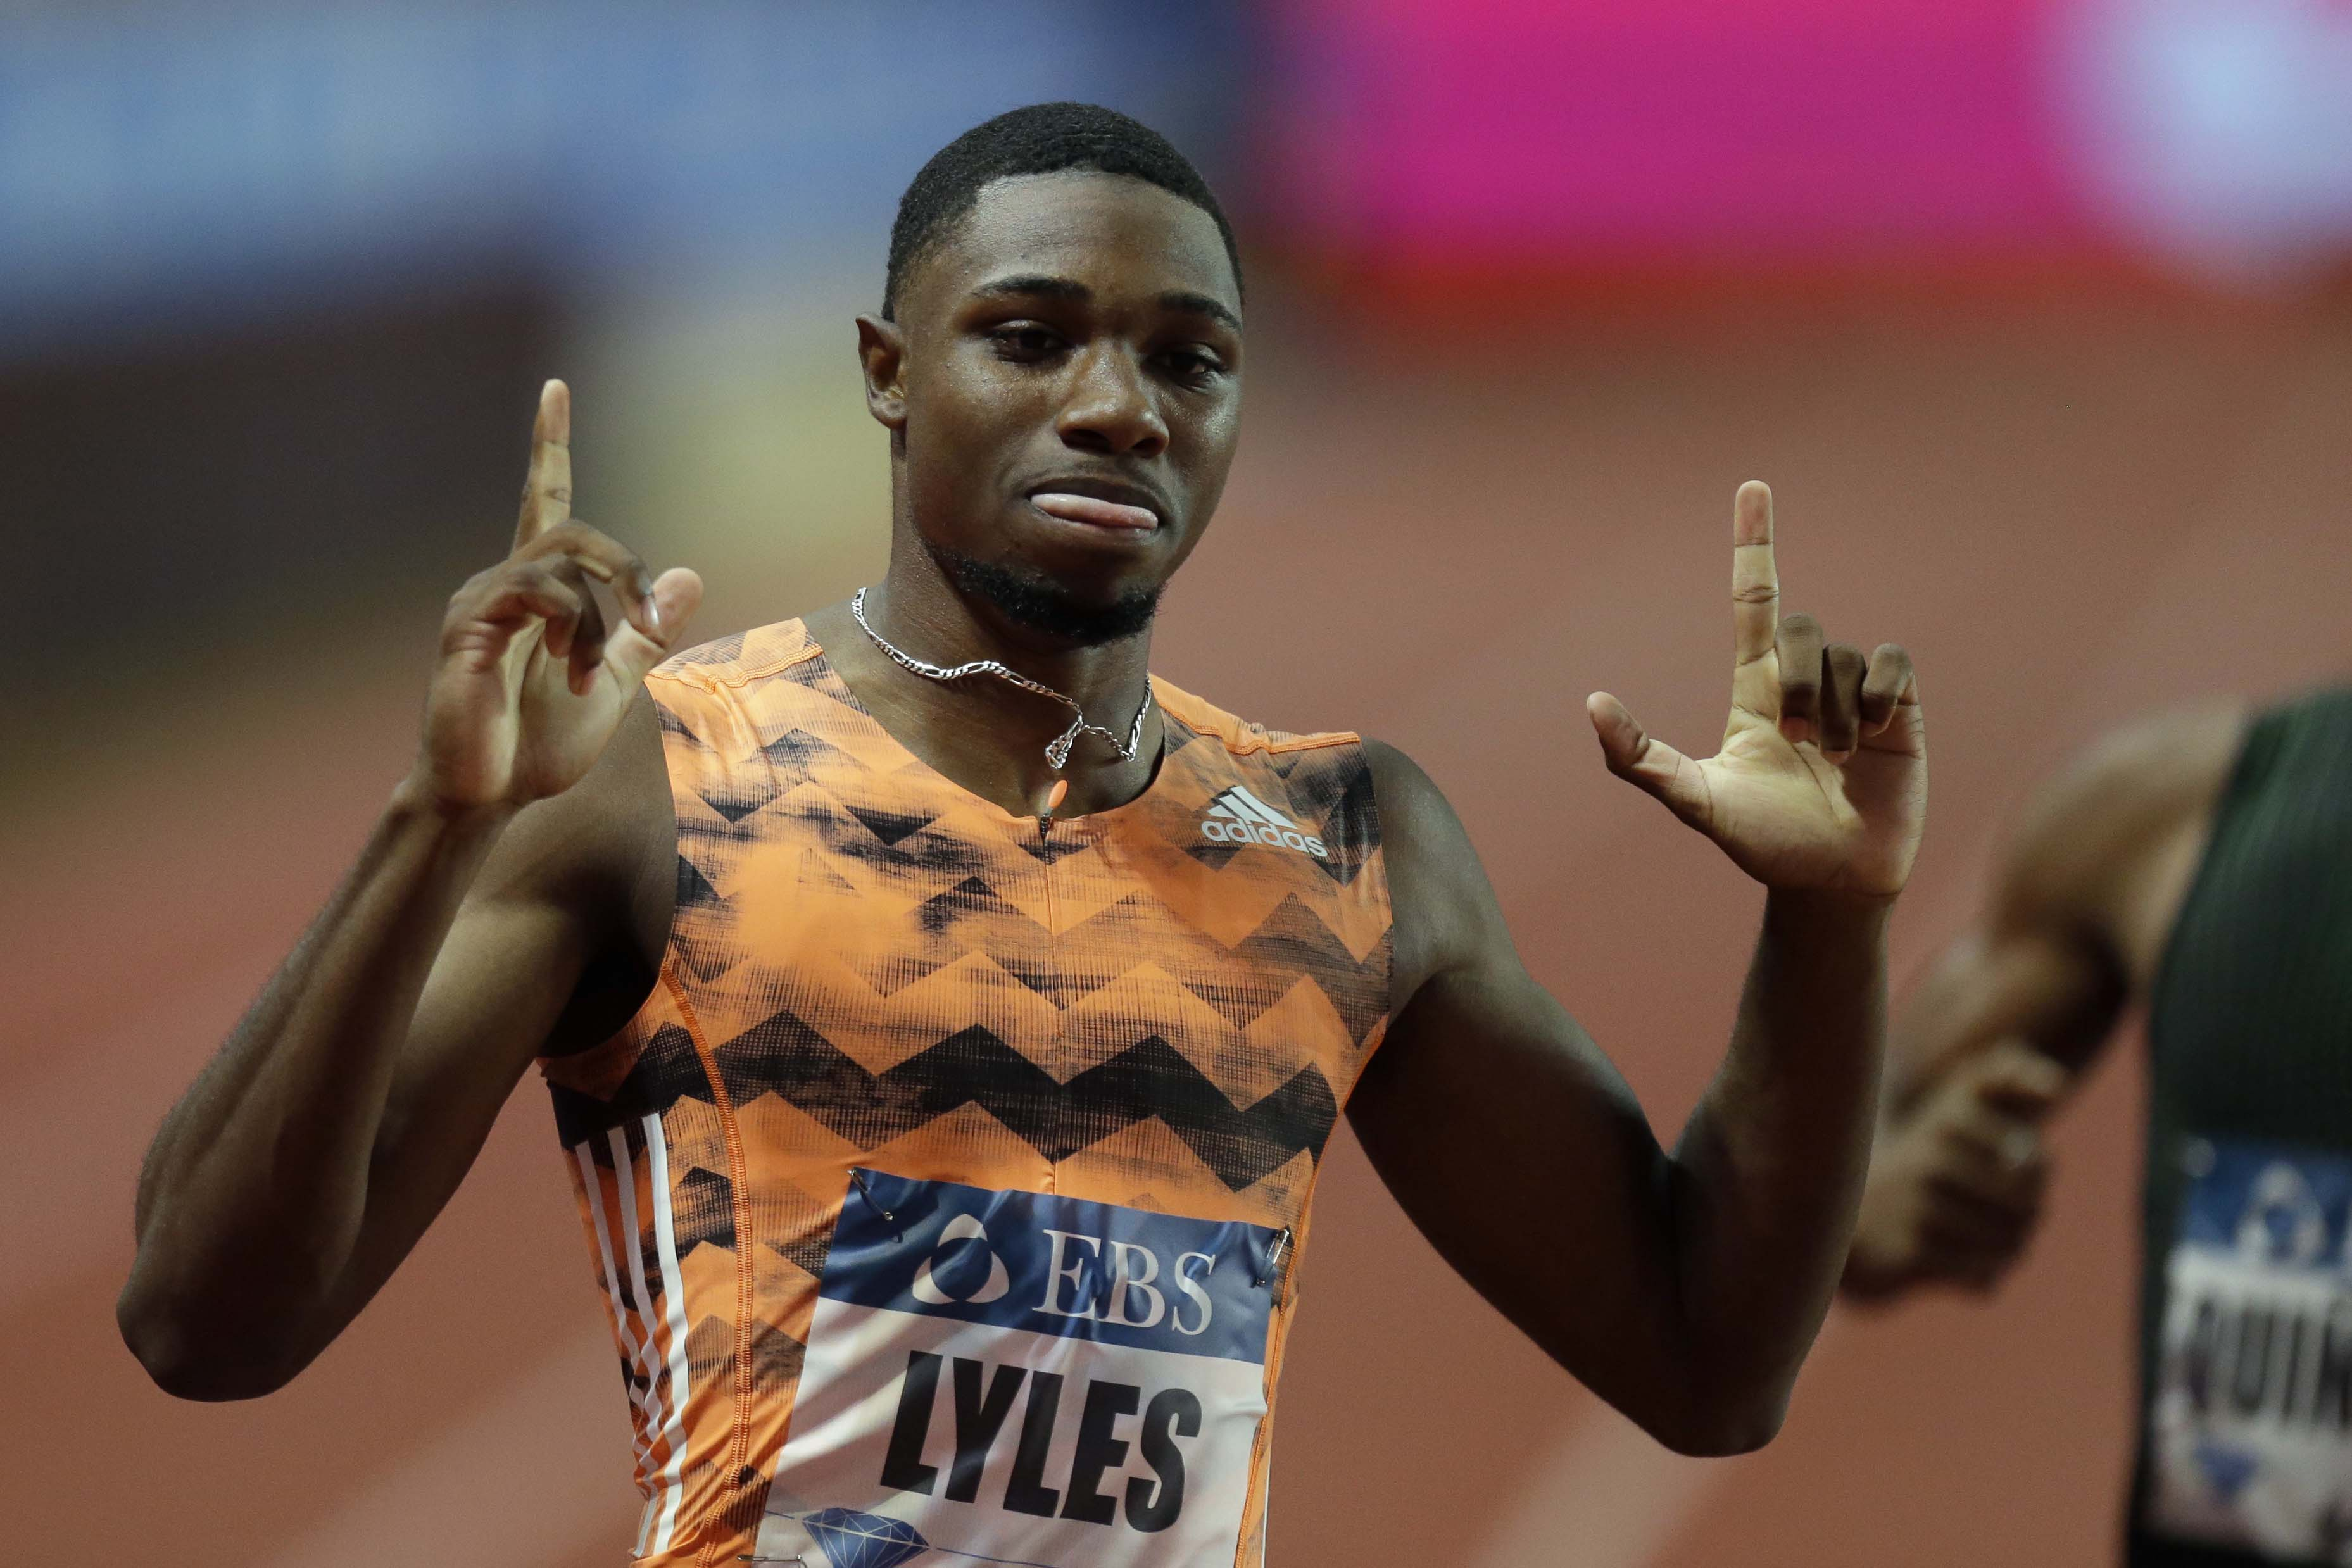 Noah Lyles from the US celebrates after winning the men's 200m race during the IAAF Diamond League Athletics meeting at the Louis II Stadium in Monaco on Friday.